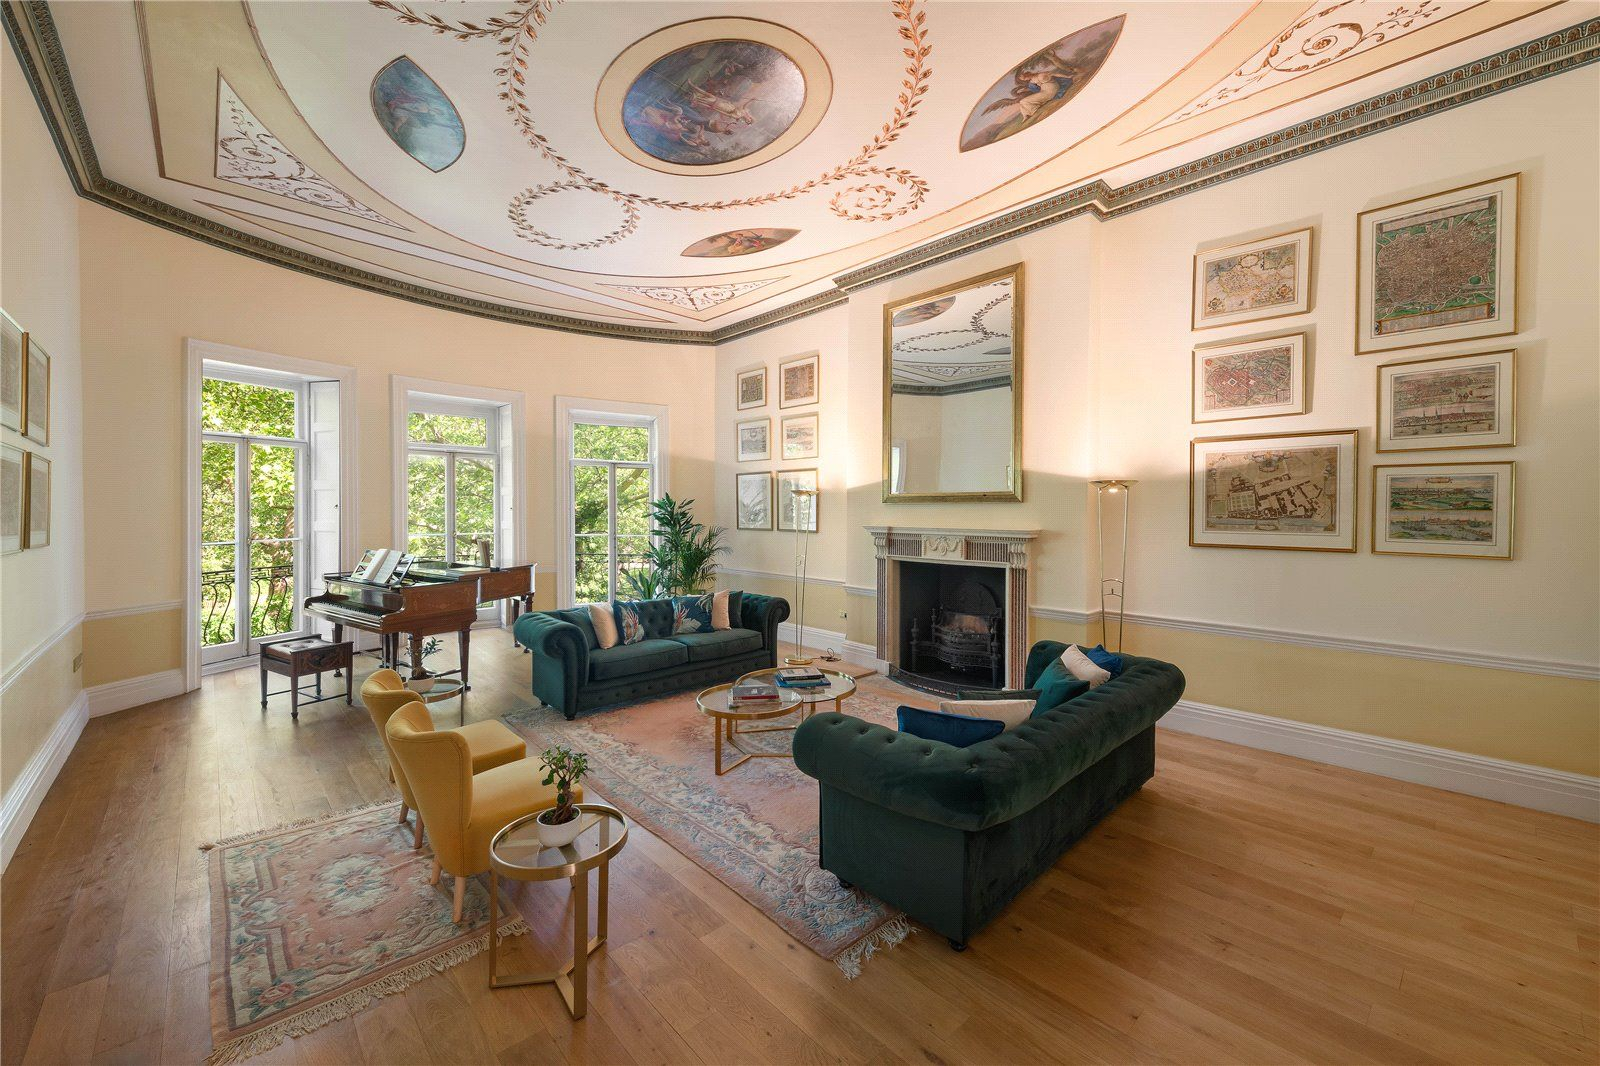 Property photo 1 of 14. Drawing Room